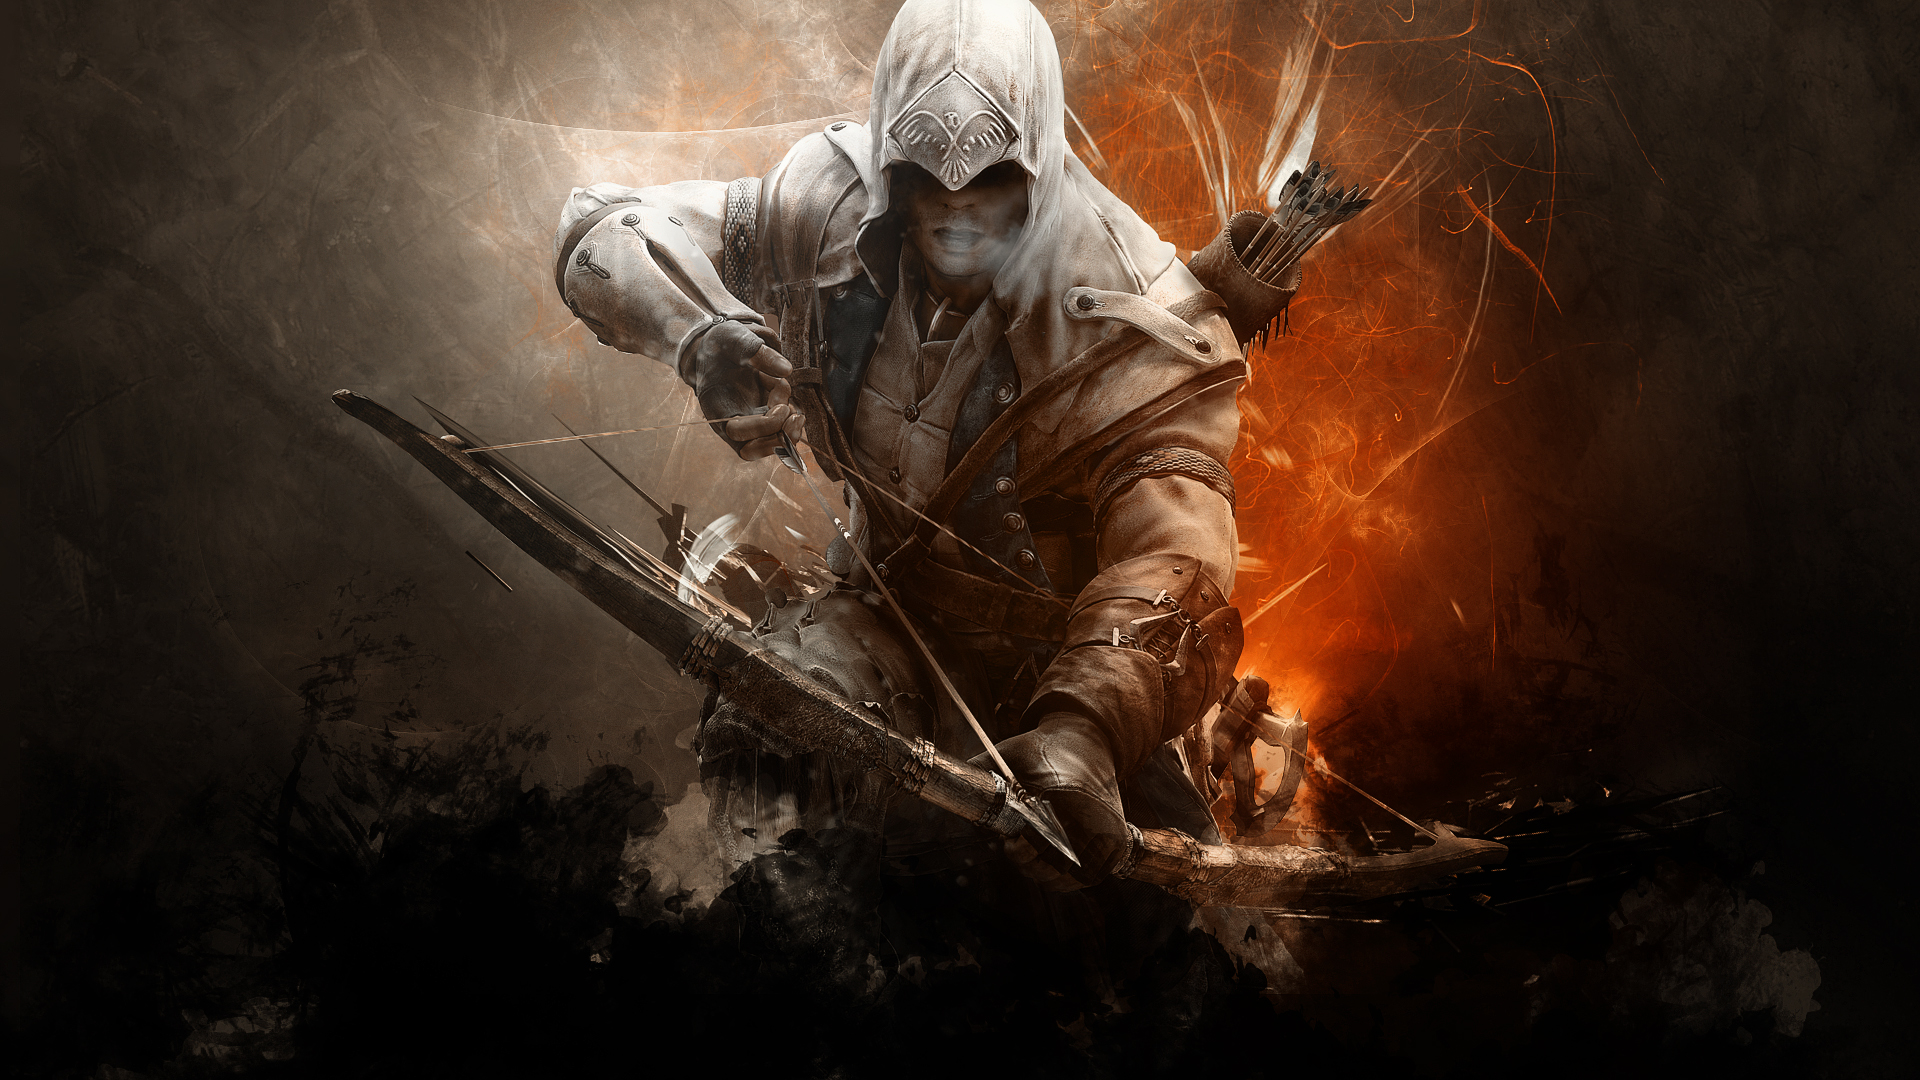 assassins creed 3 connor - photo #24